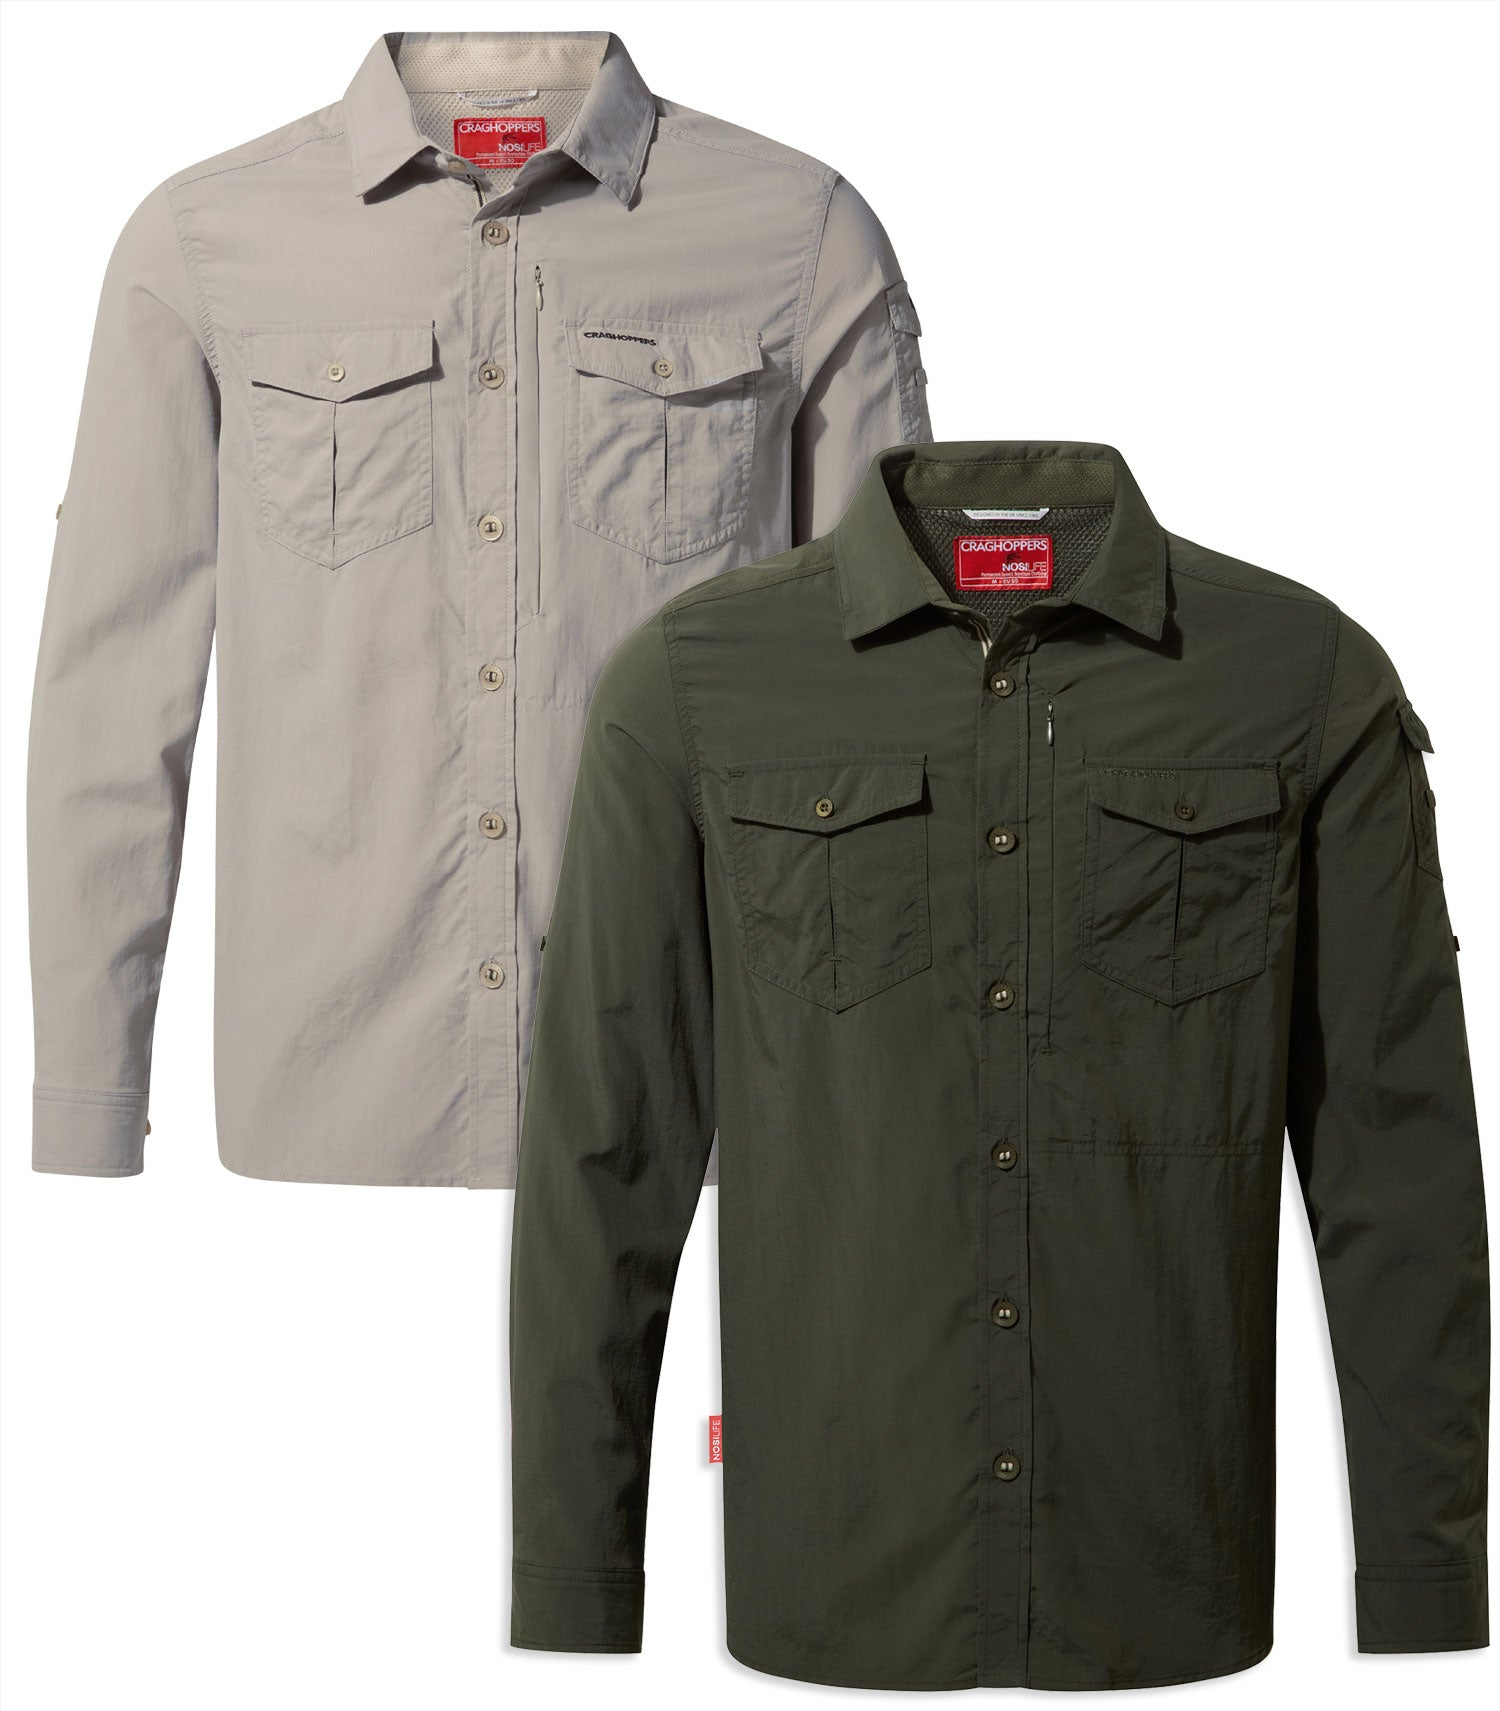 0e32fb32 Craghoppers NosiLife Adventure Shirt II Long Sleeved | Parchment & Dark  Khaki